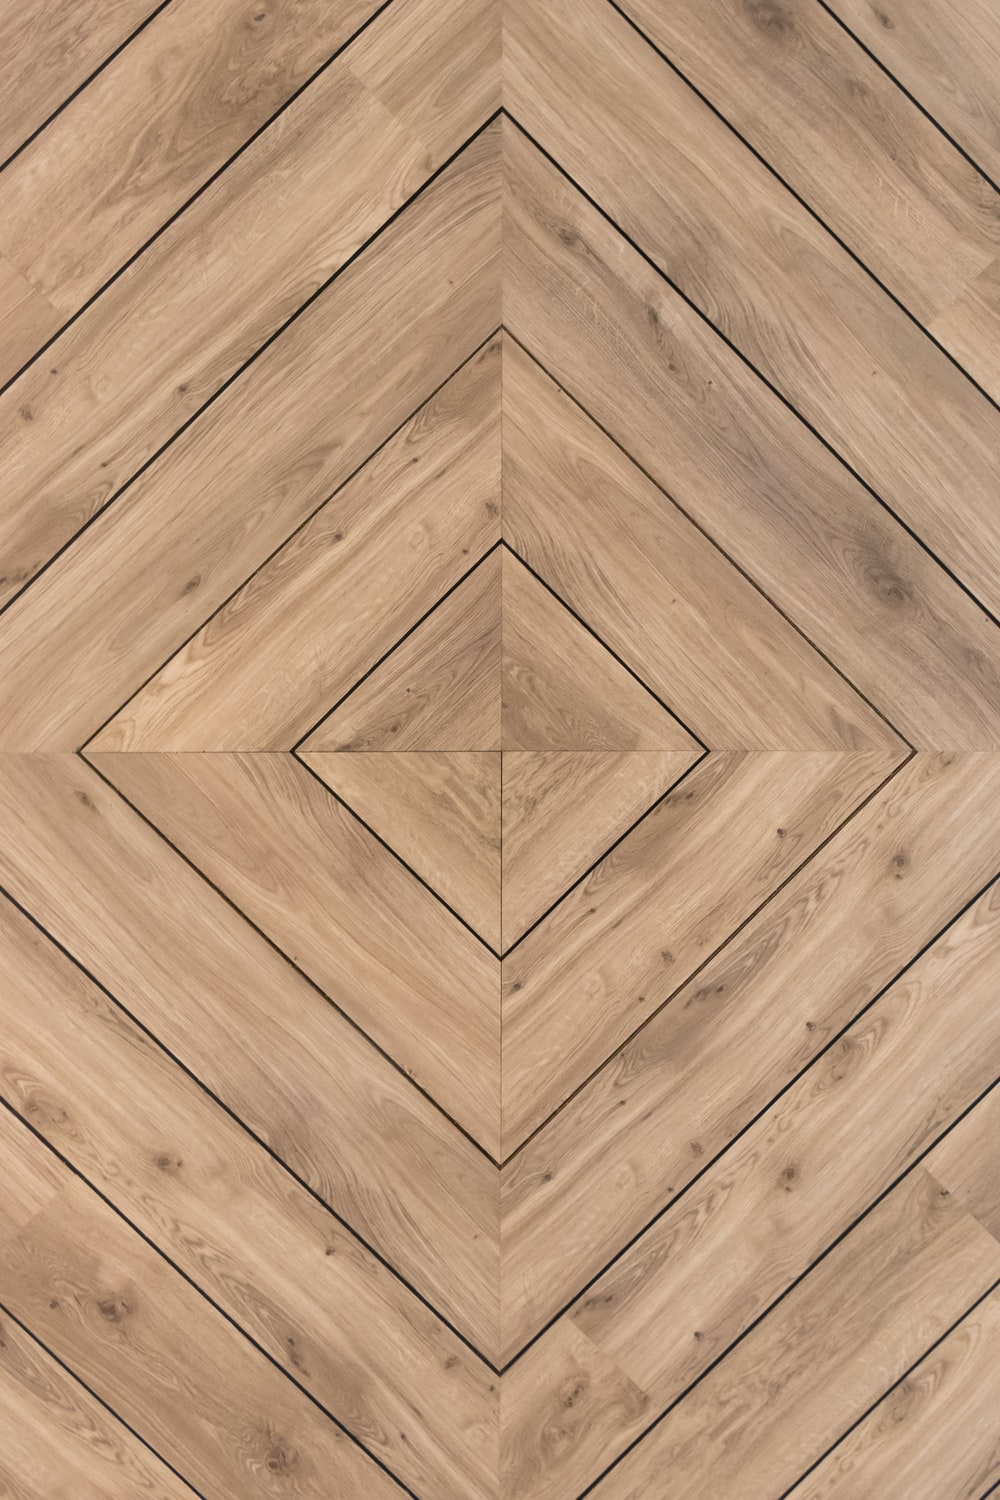 brown wooden parquet floor tiles